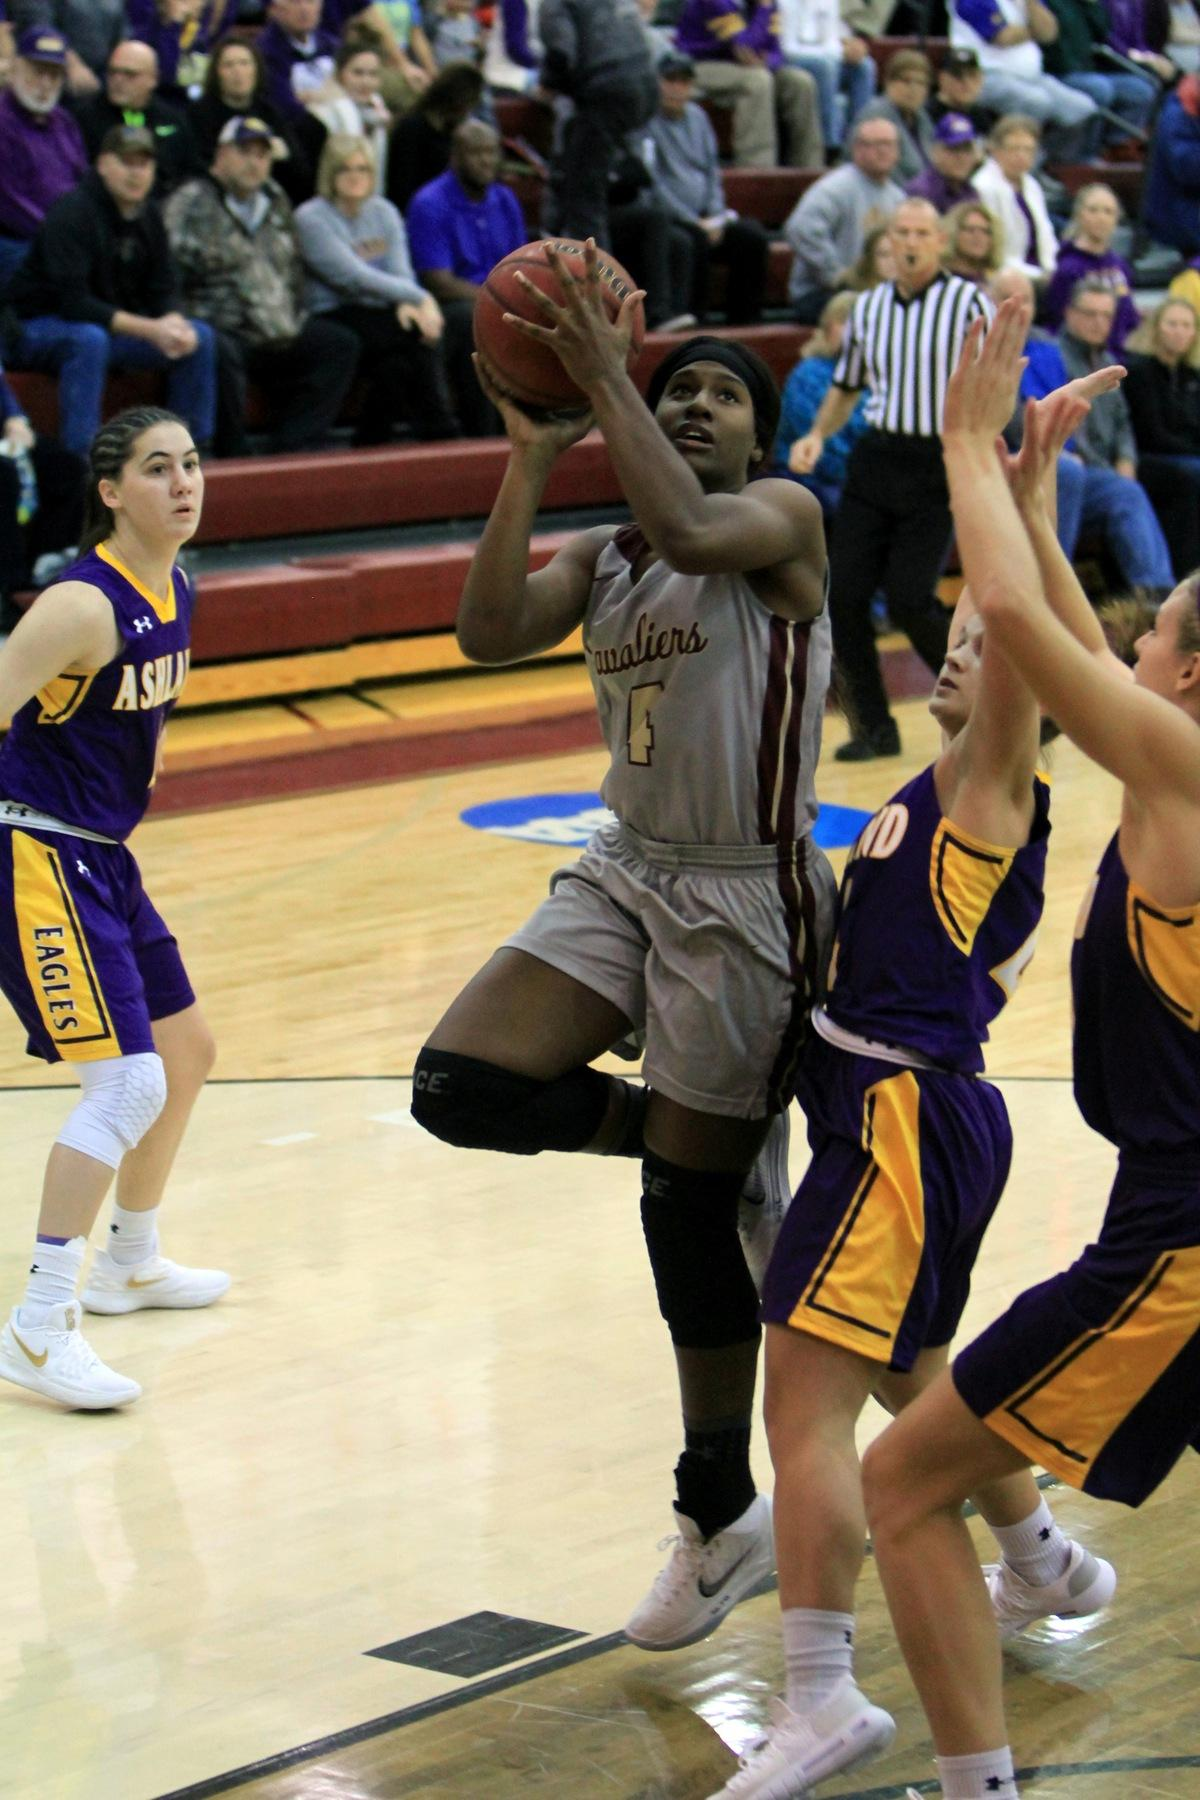 Women's Basketball Freshman Standouts Lead Cavs to Victory